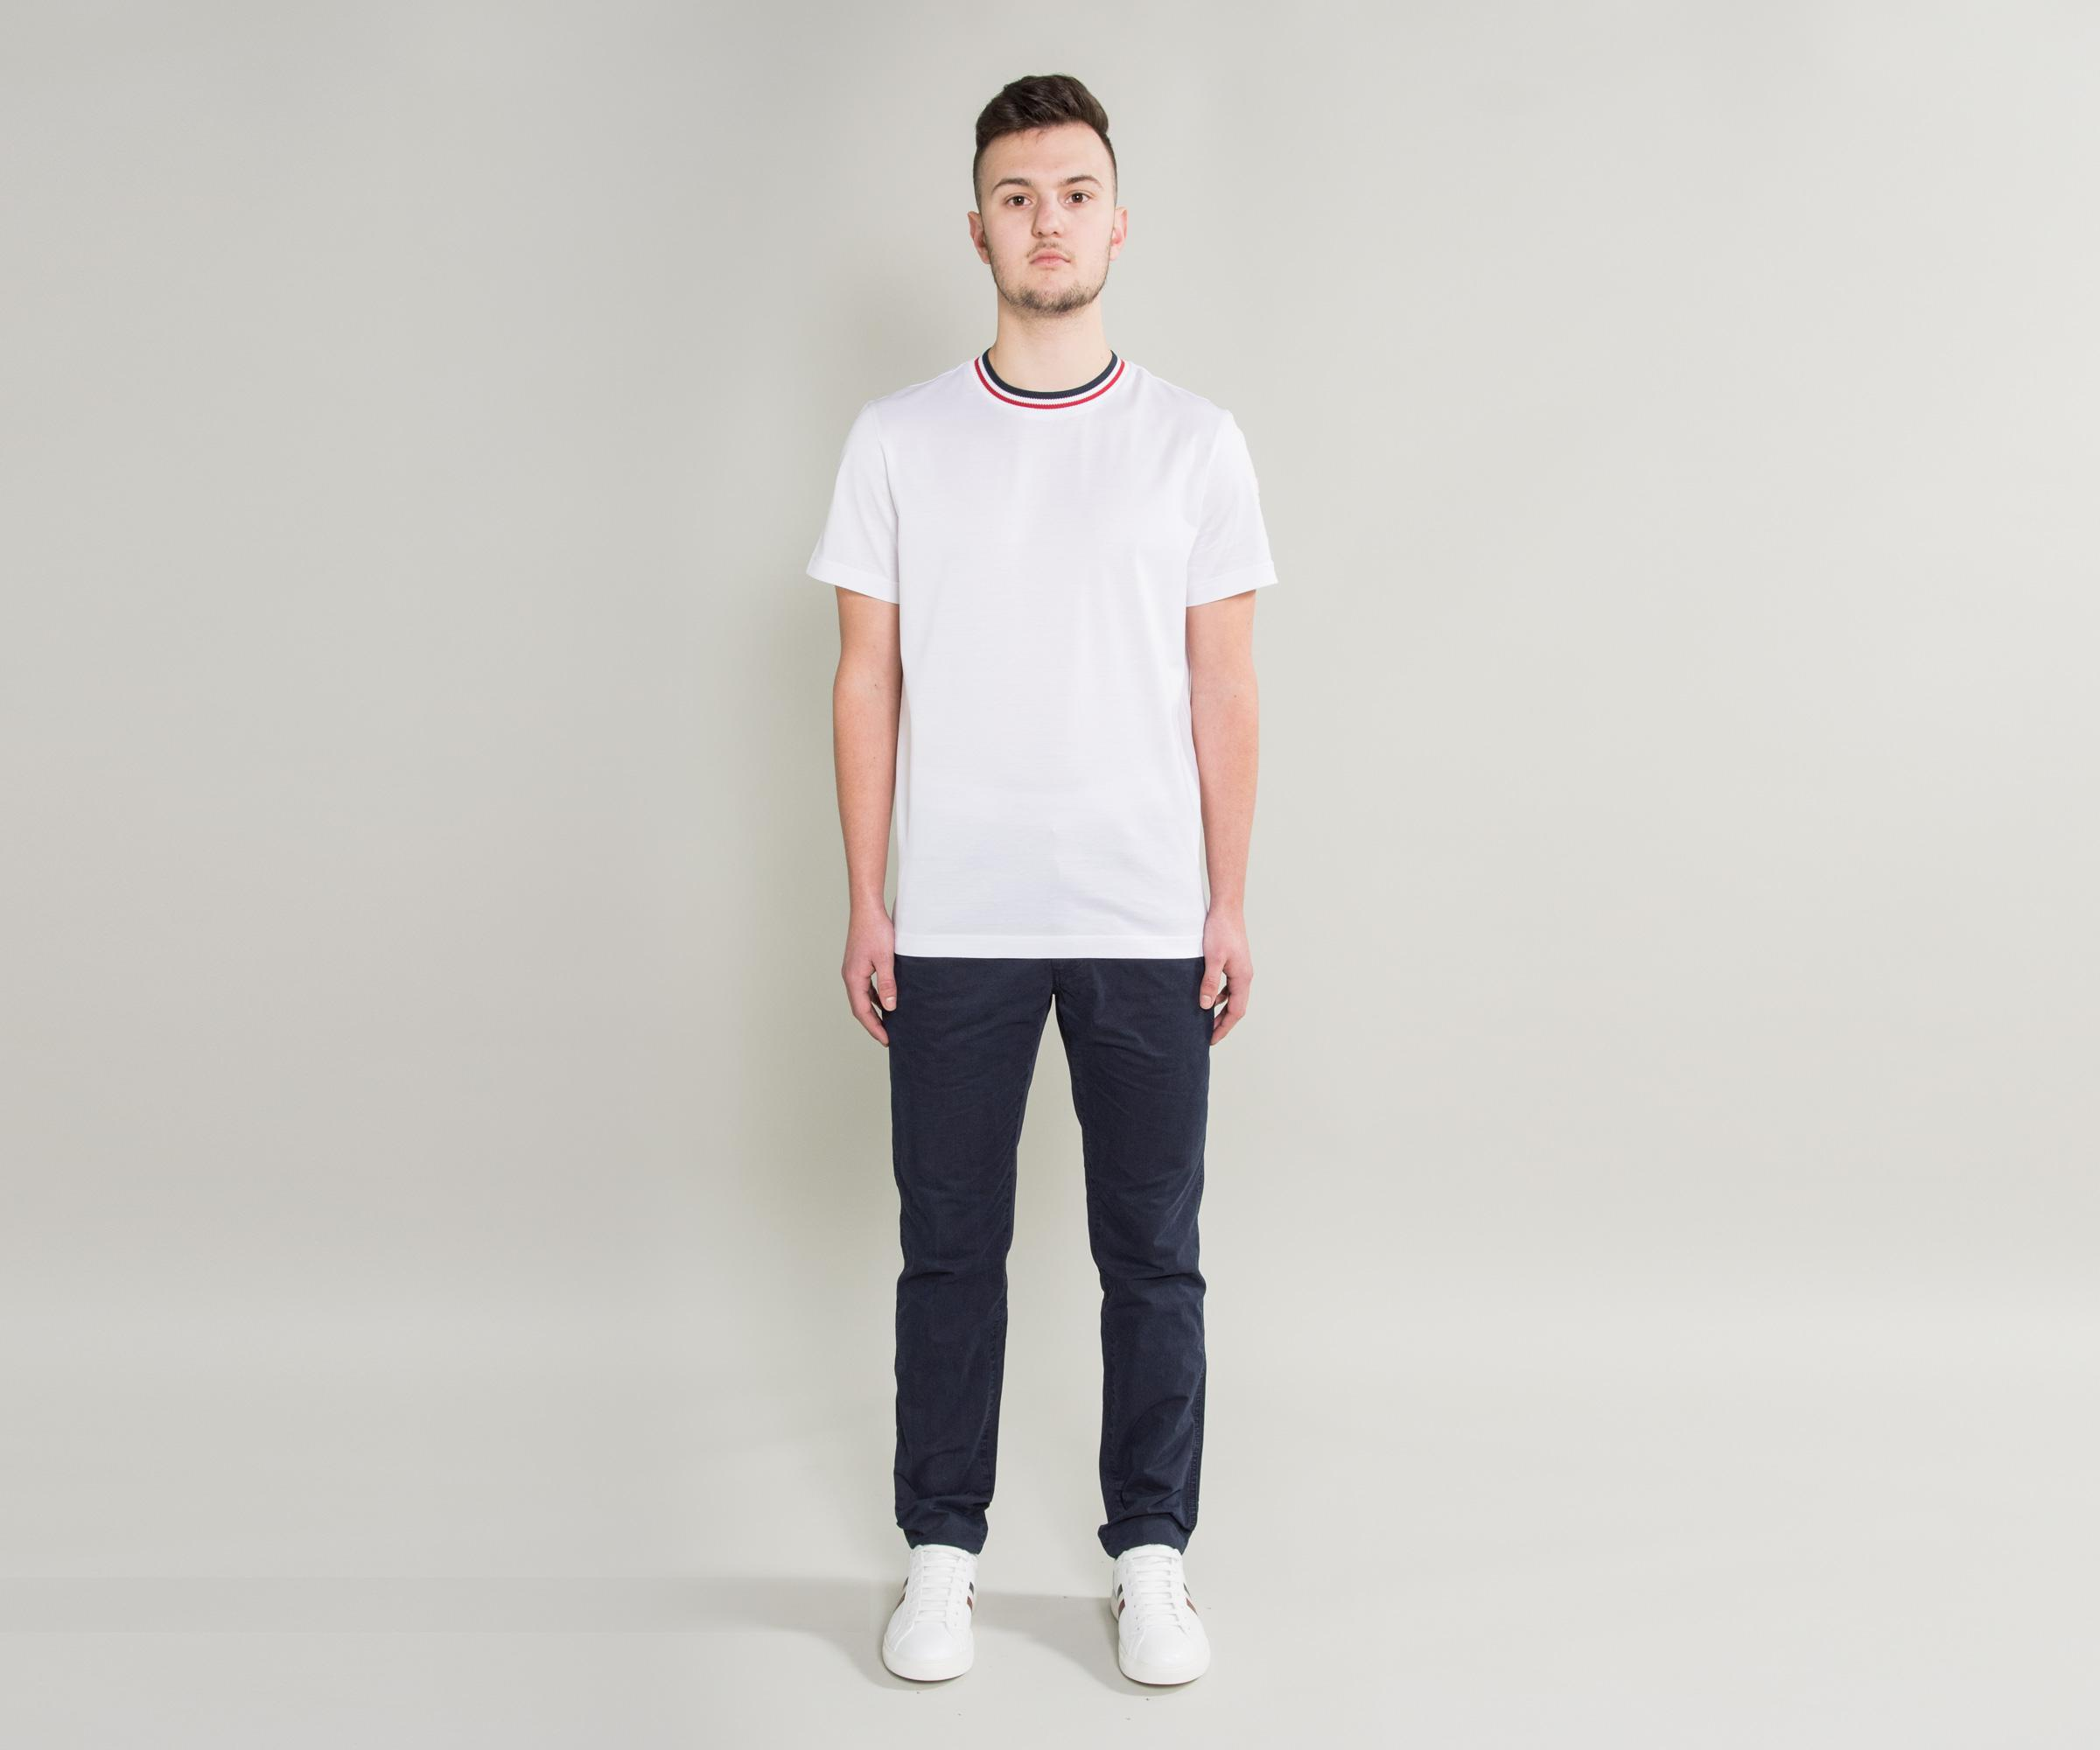 a425034f4850 Lyst - Moncler Knitted Tricolour Collar T-shirt White in White for Men